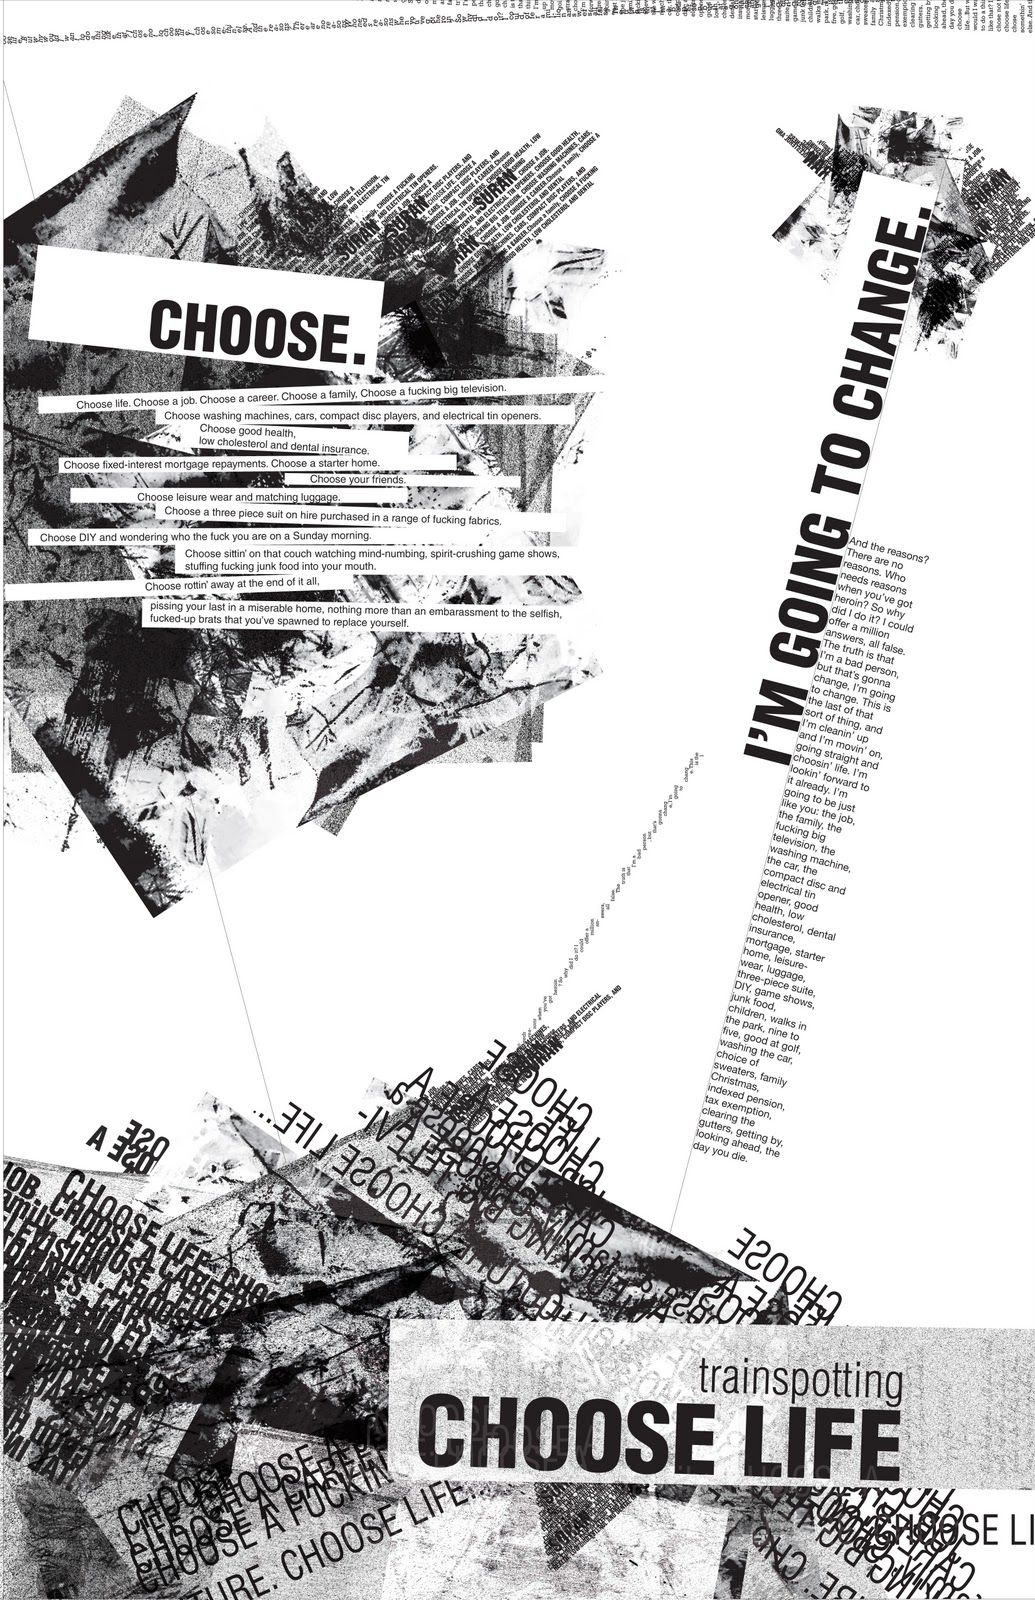 Trainspotting | Film posters | Pinterest | Choose life and ...